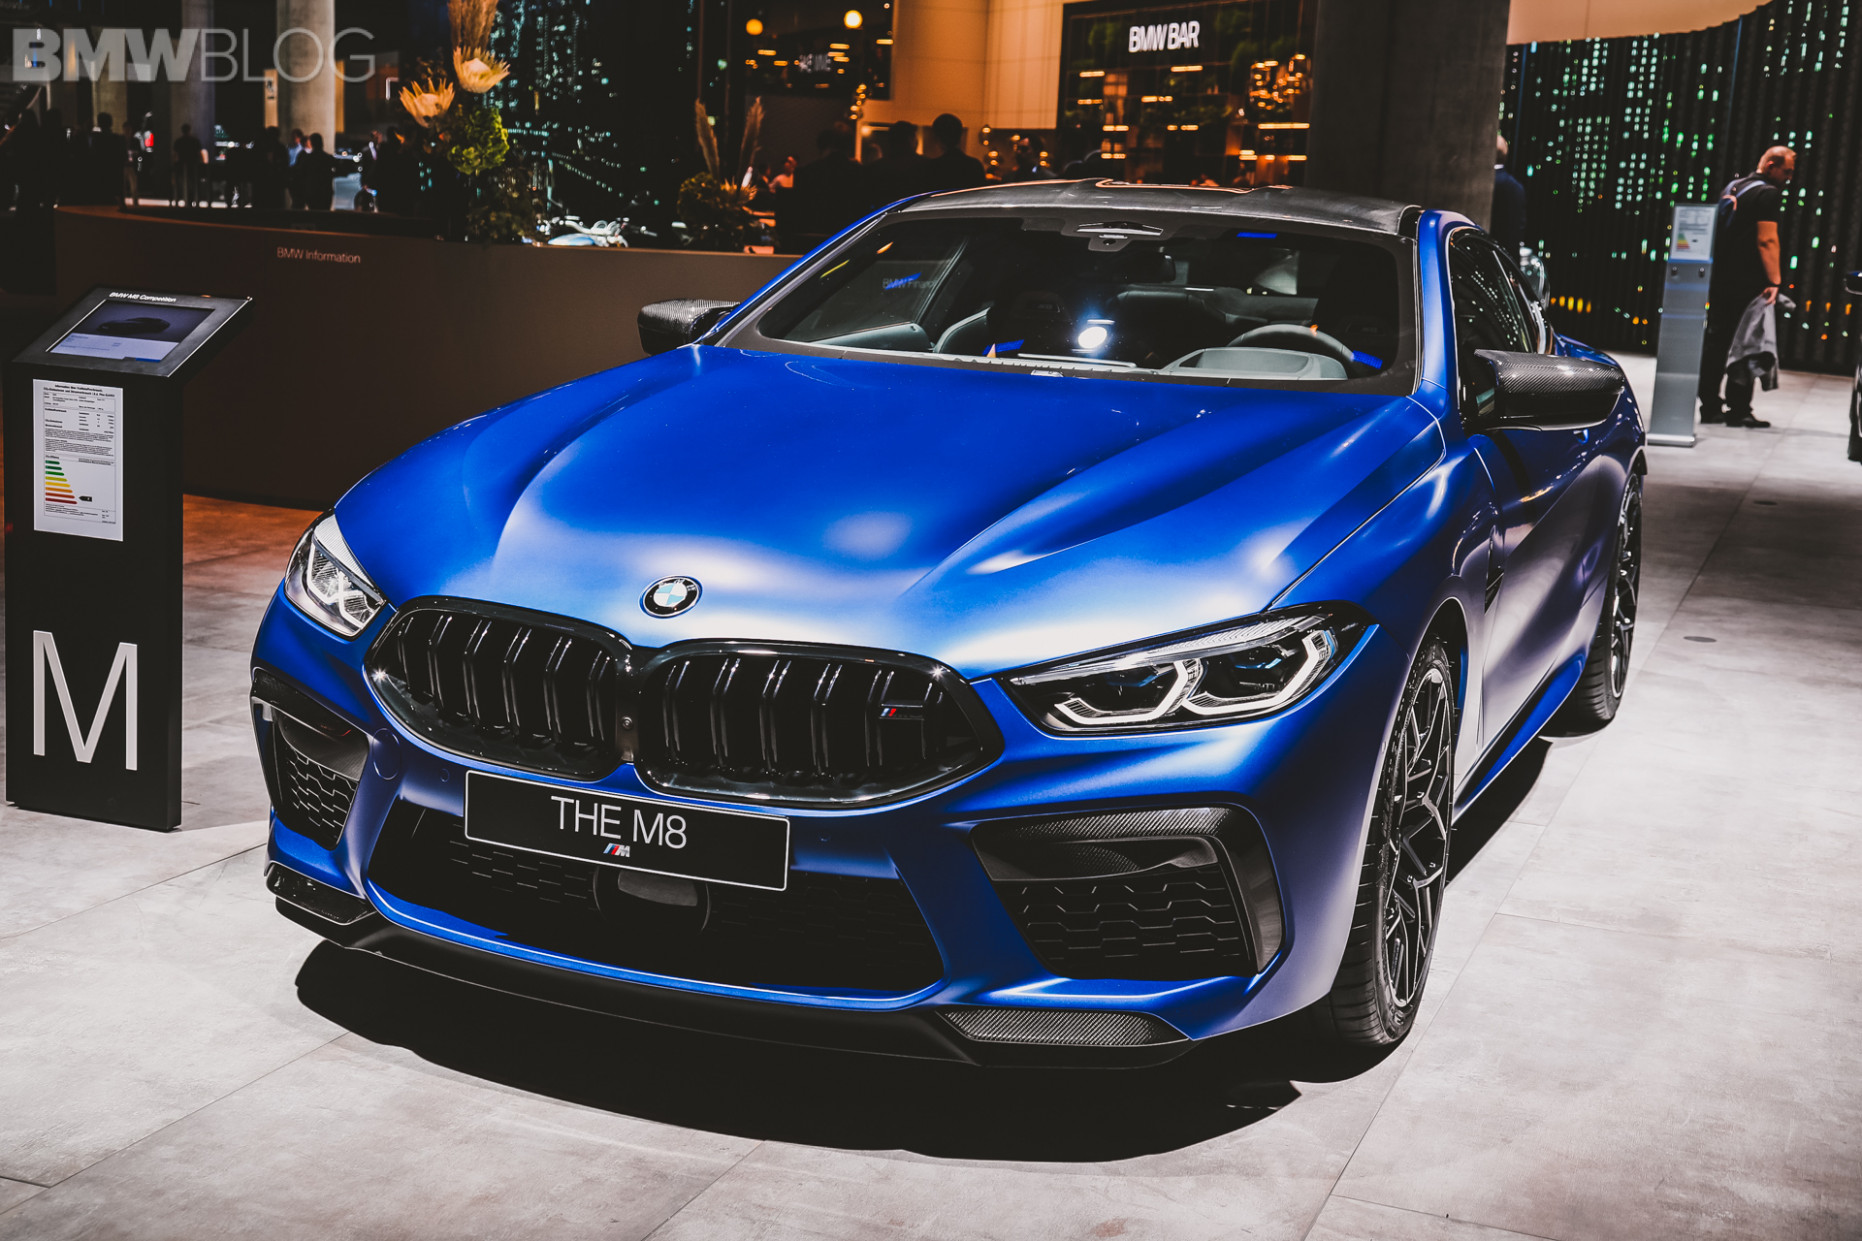 7 BMW M7 Coupe in Frozen Marina Bay Blue - Best Color Yet? - 2020 bmw blue colors